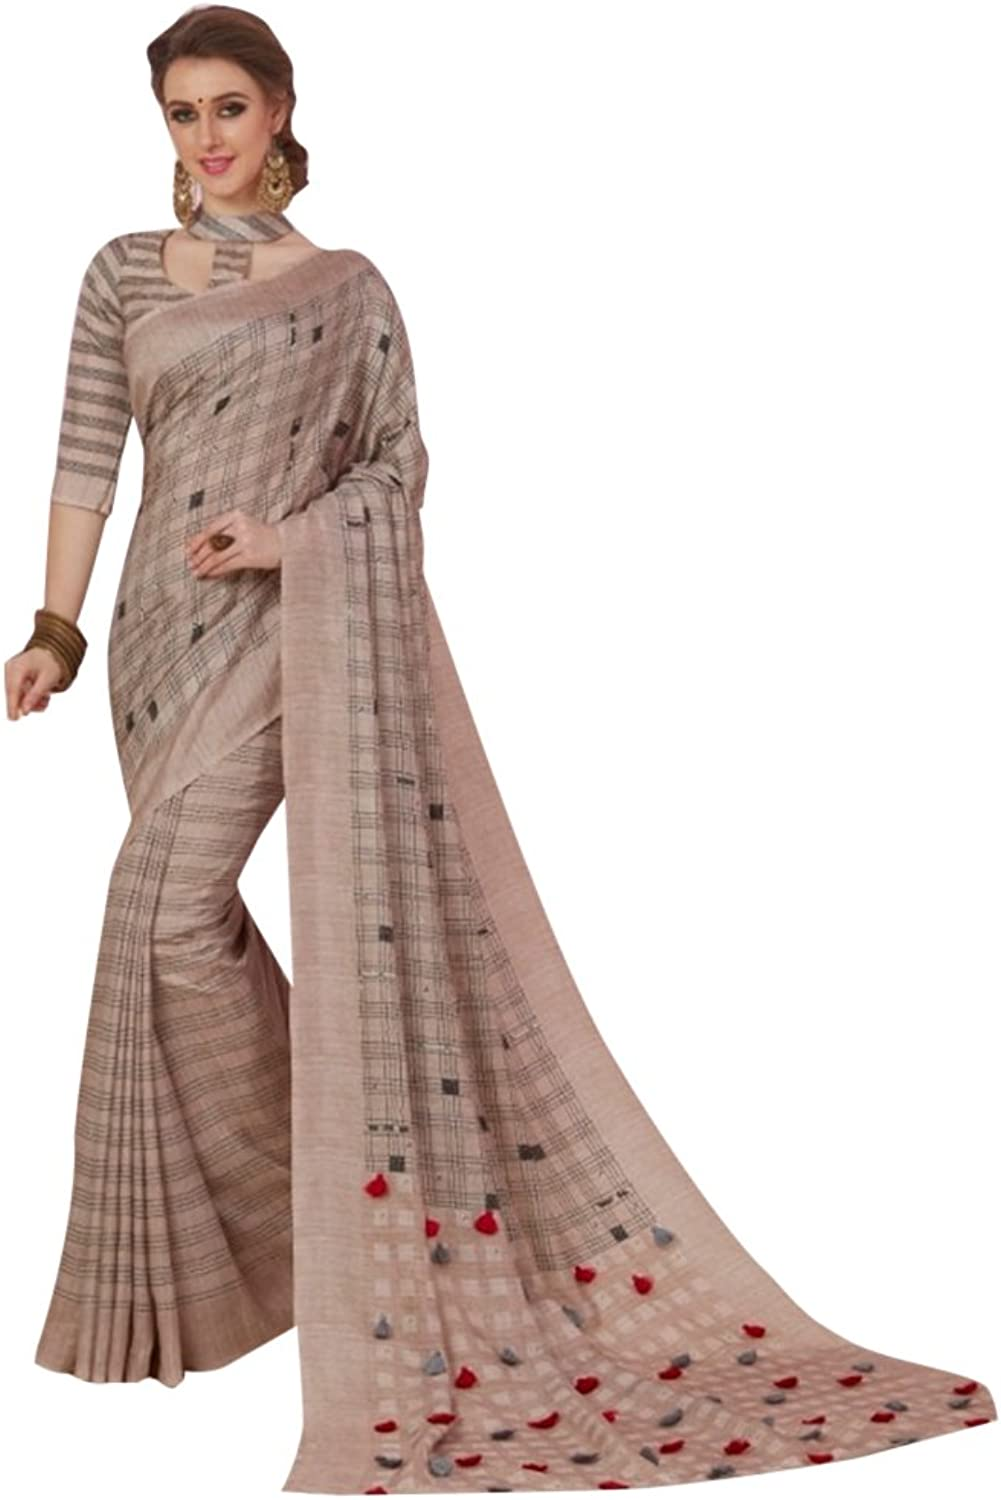 Designer Bollywood Saree Sari for Women Latest Indian Ethnic Collection Blouse Party Wear Festive Ceremony 896 4